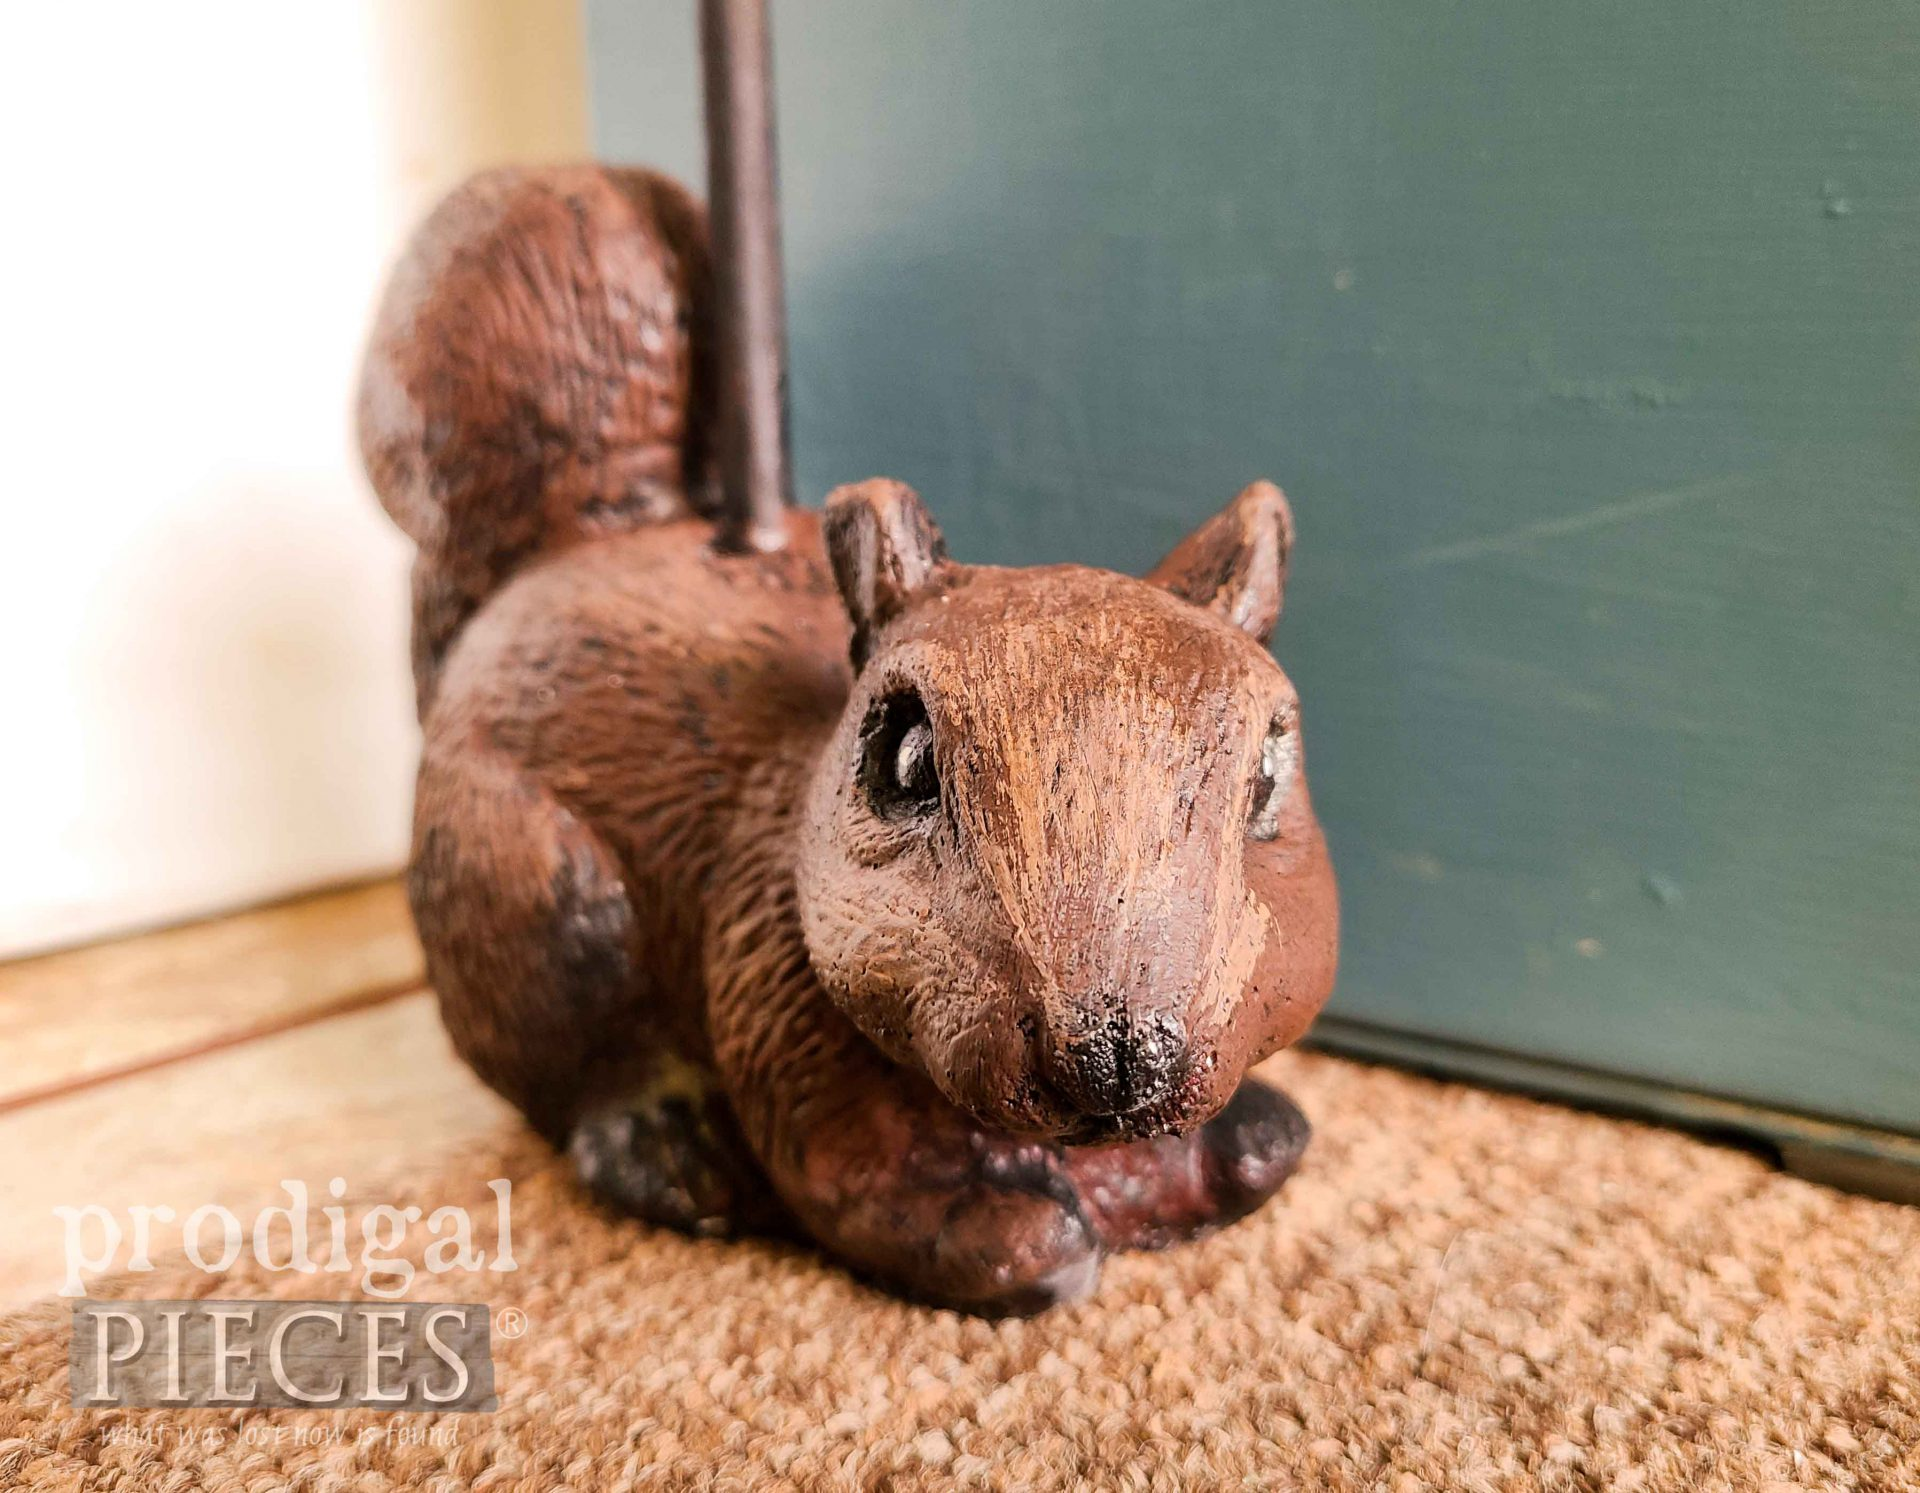 Red Squirrel Doorstop by Larissa of Prodigal Pieces | prodigalpieces.com #prodigalpieces #diy #home #farmhouse #woodland